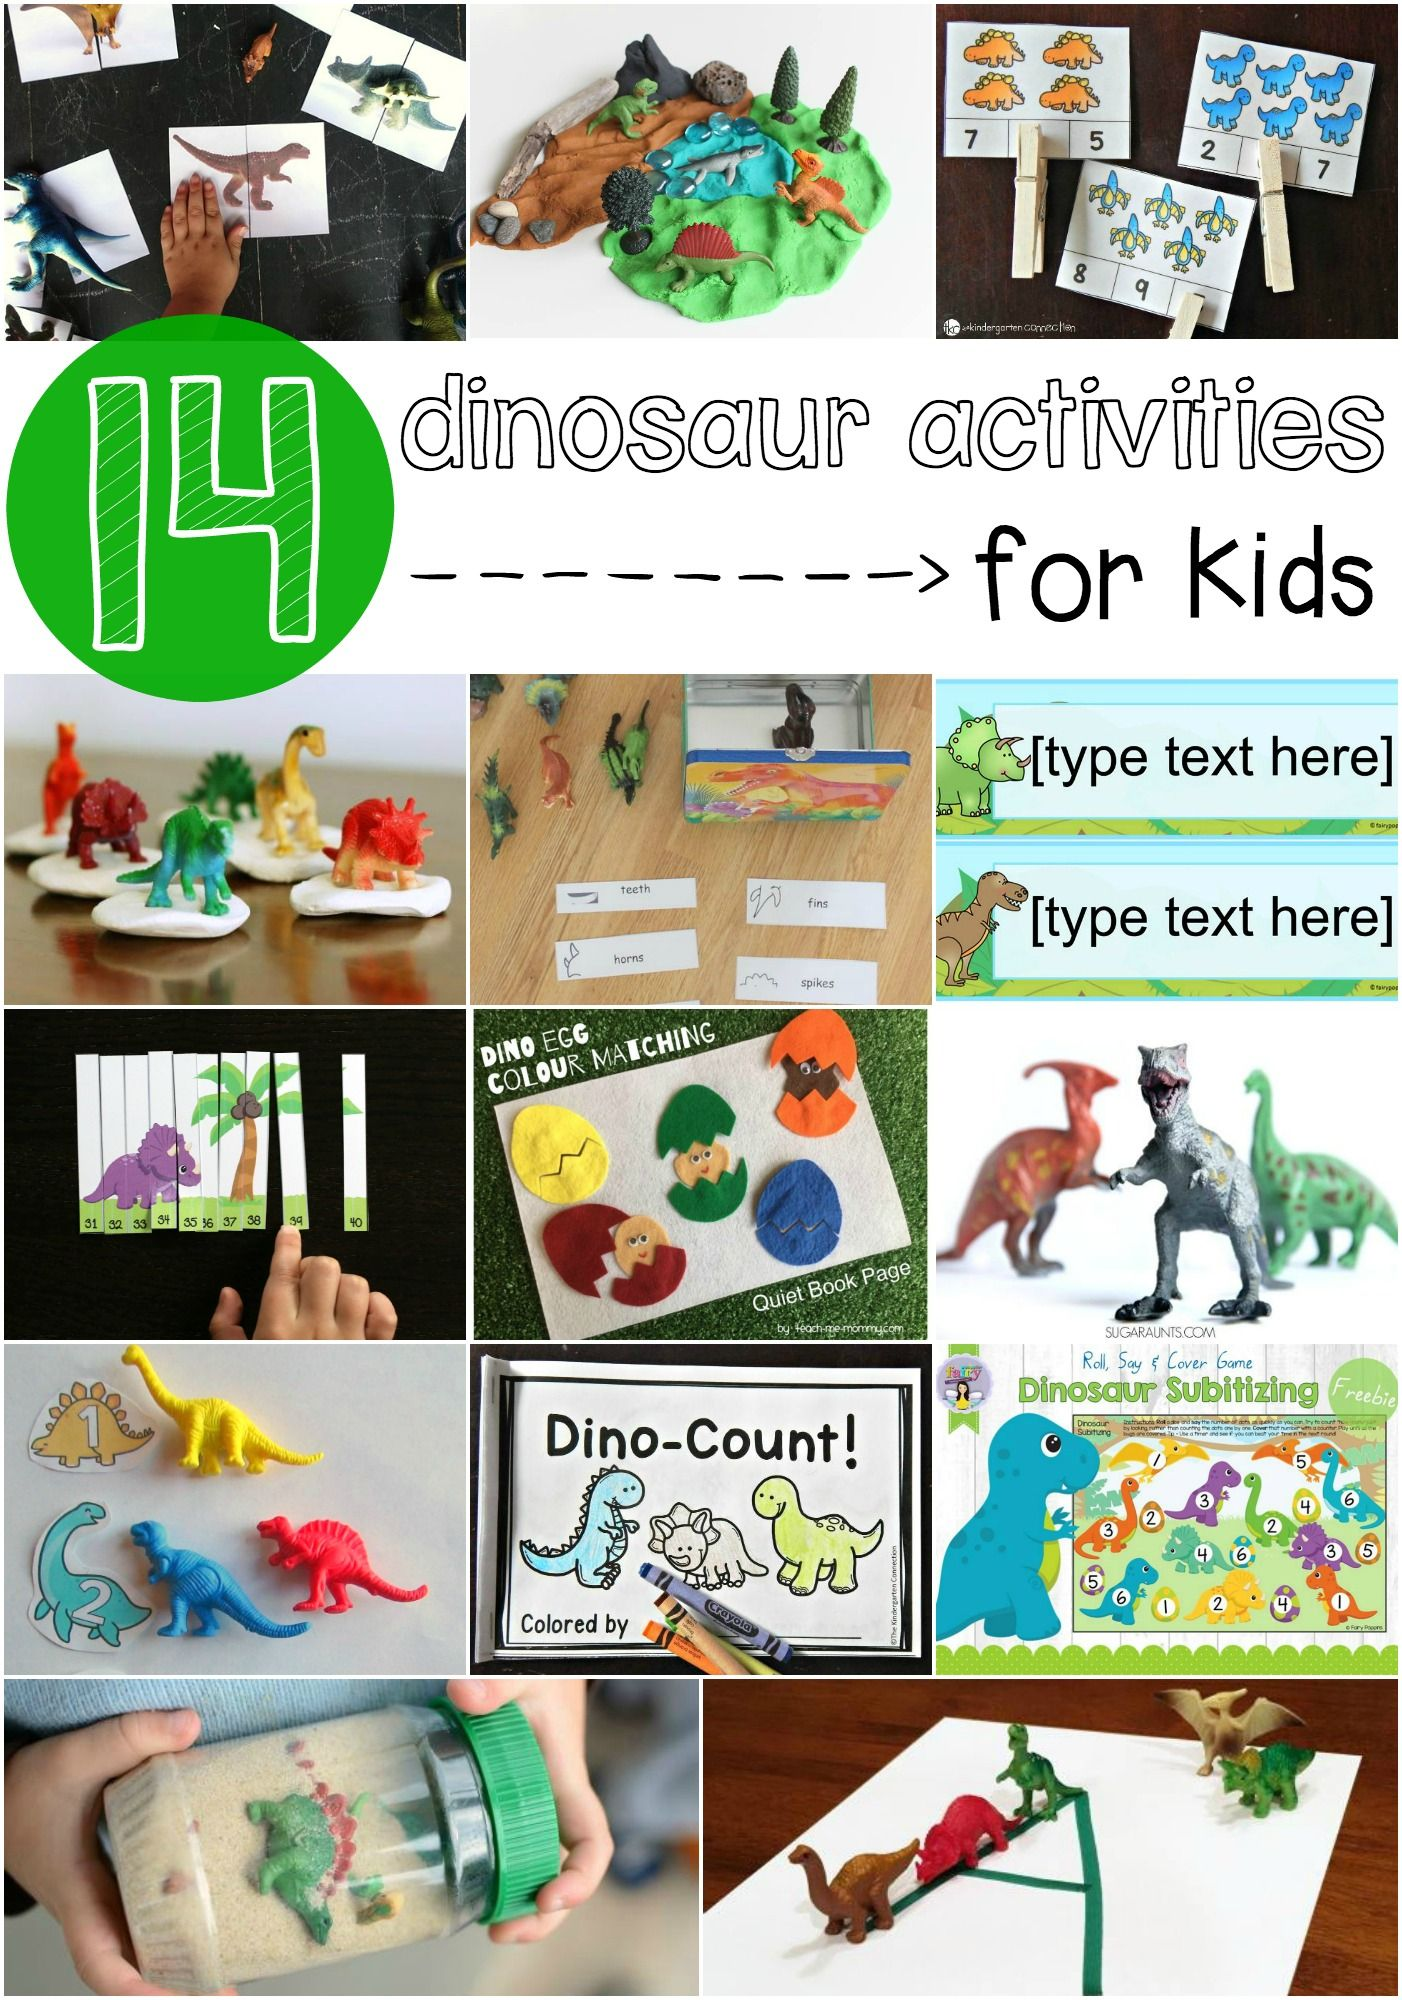 Dinosaur Play Dough Kit